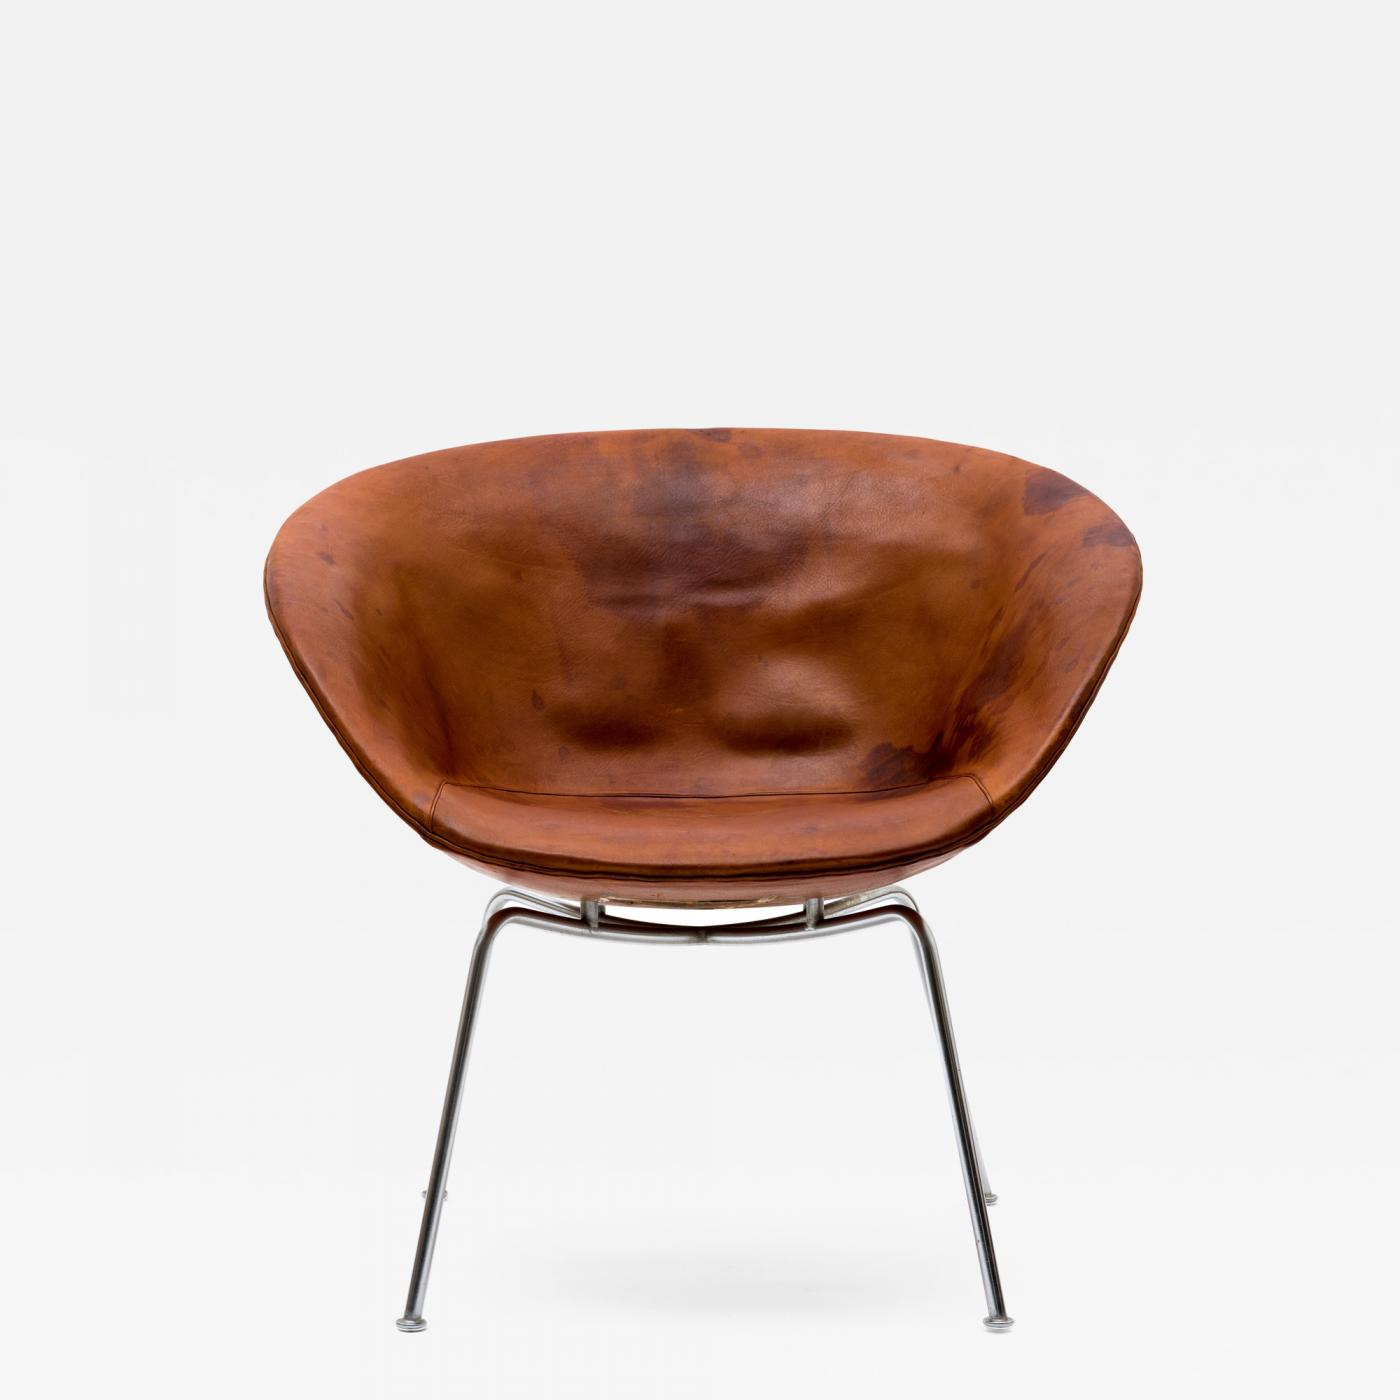 Fritz Hansen Chairs Arne Jacobsen Arne Jacobsen Pot Chair In Distressed Original Fritz Hansen Cognac Leather